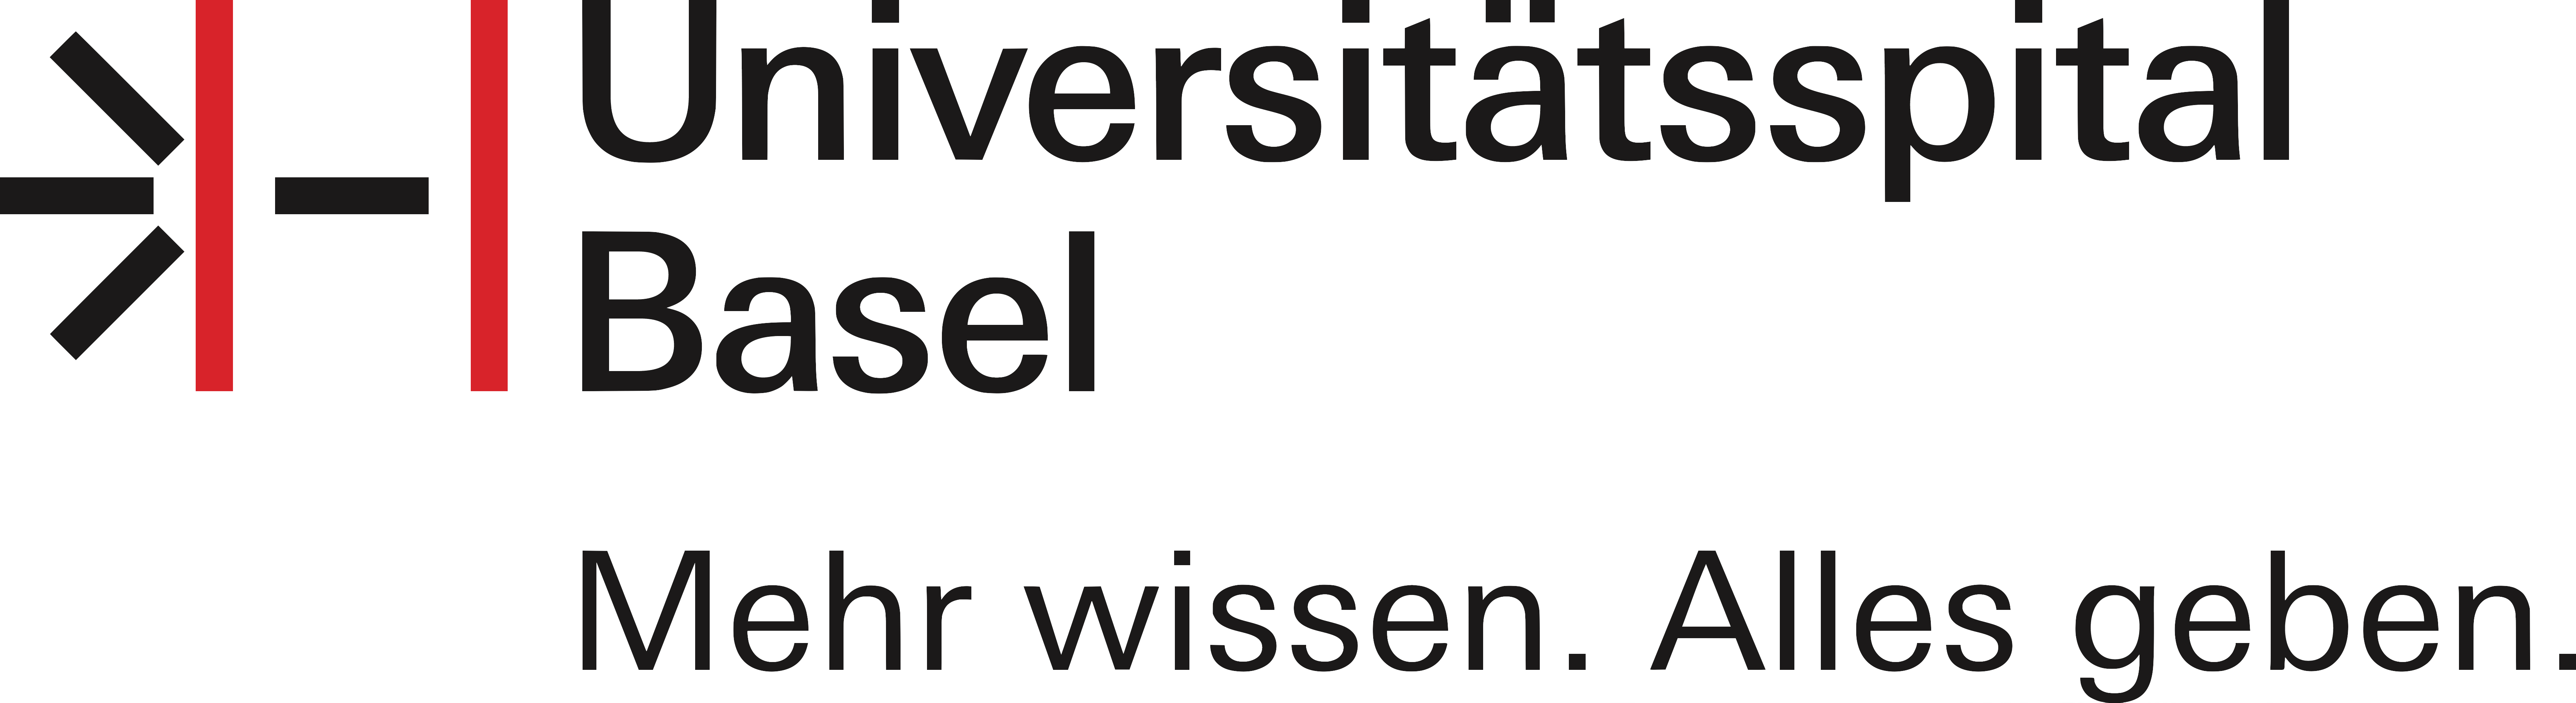 university hospital basel corporate logo